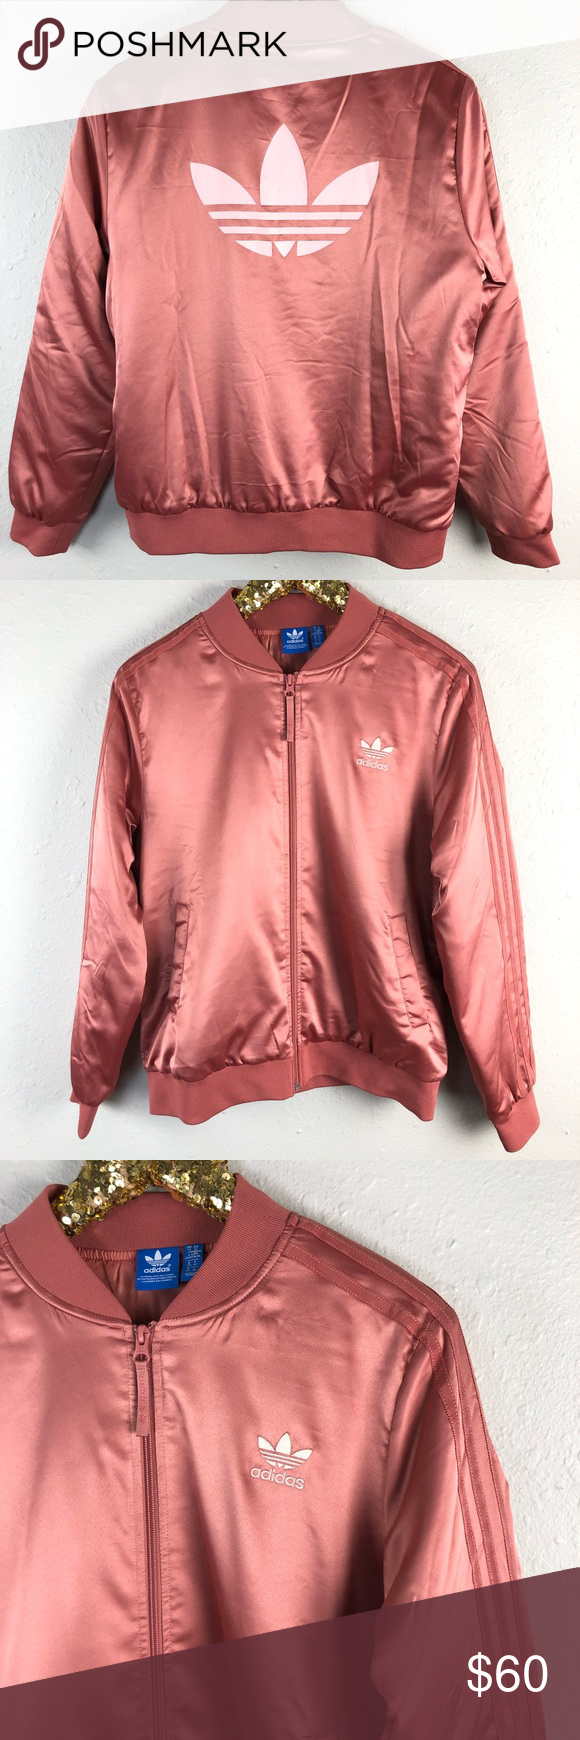 04edf81b489 Adidas Rose Gold Pink Bomber Satin Track Jacket See other items for more  great stuff.